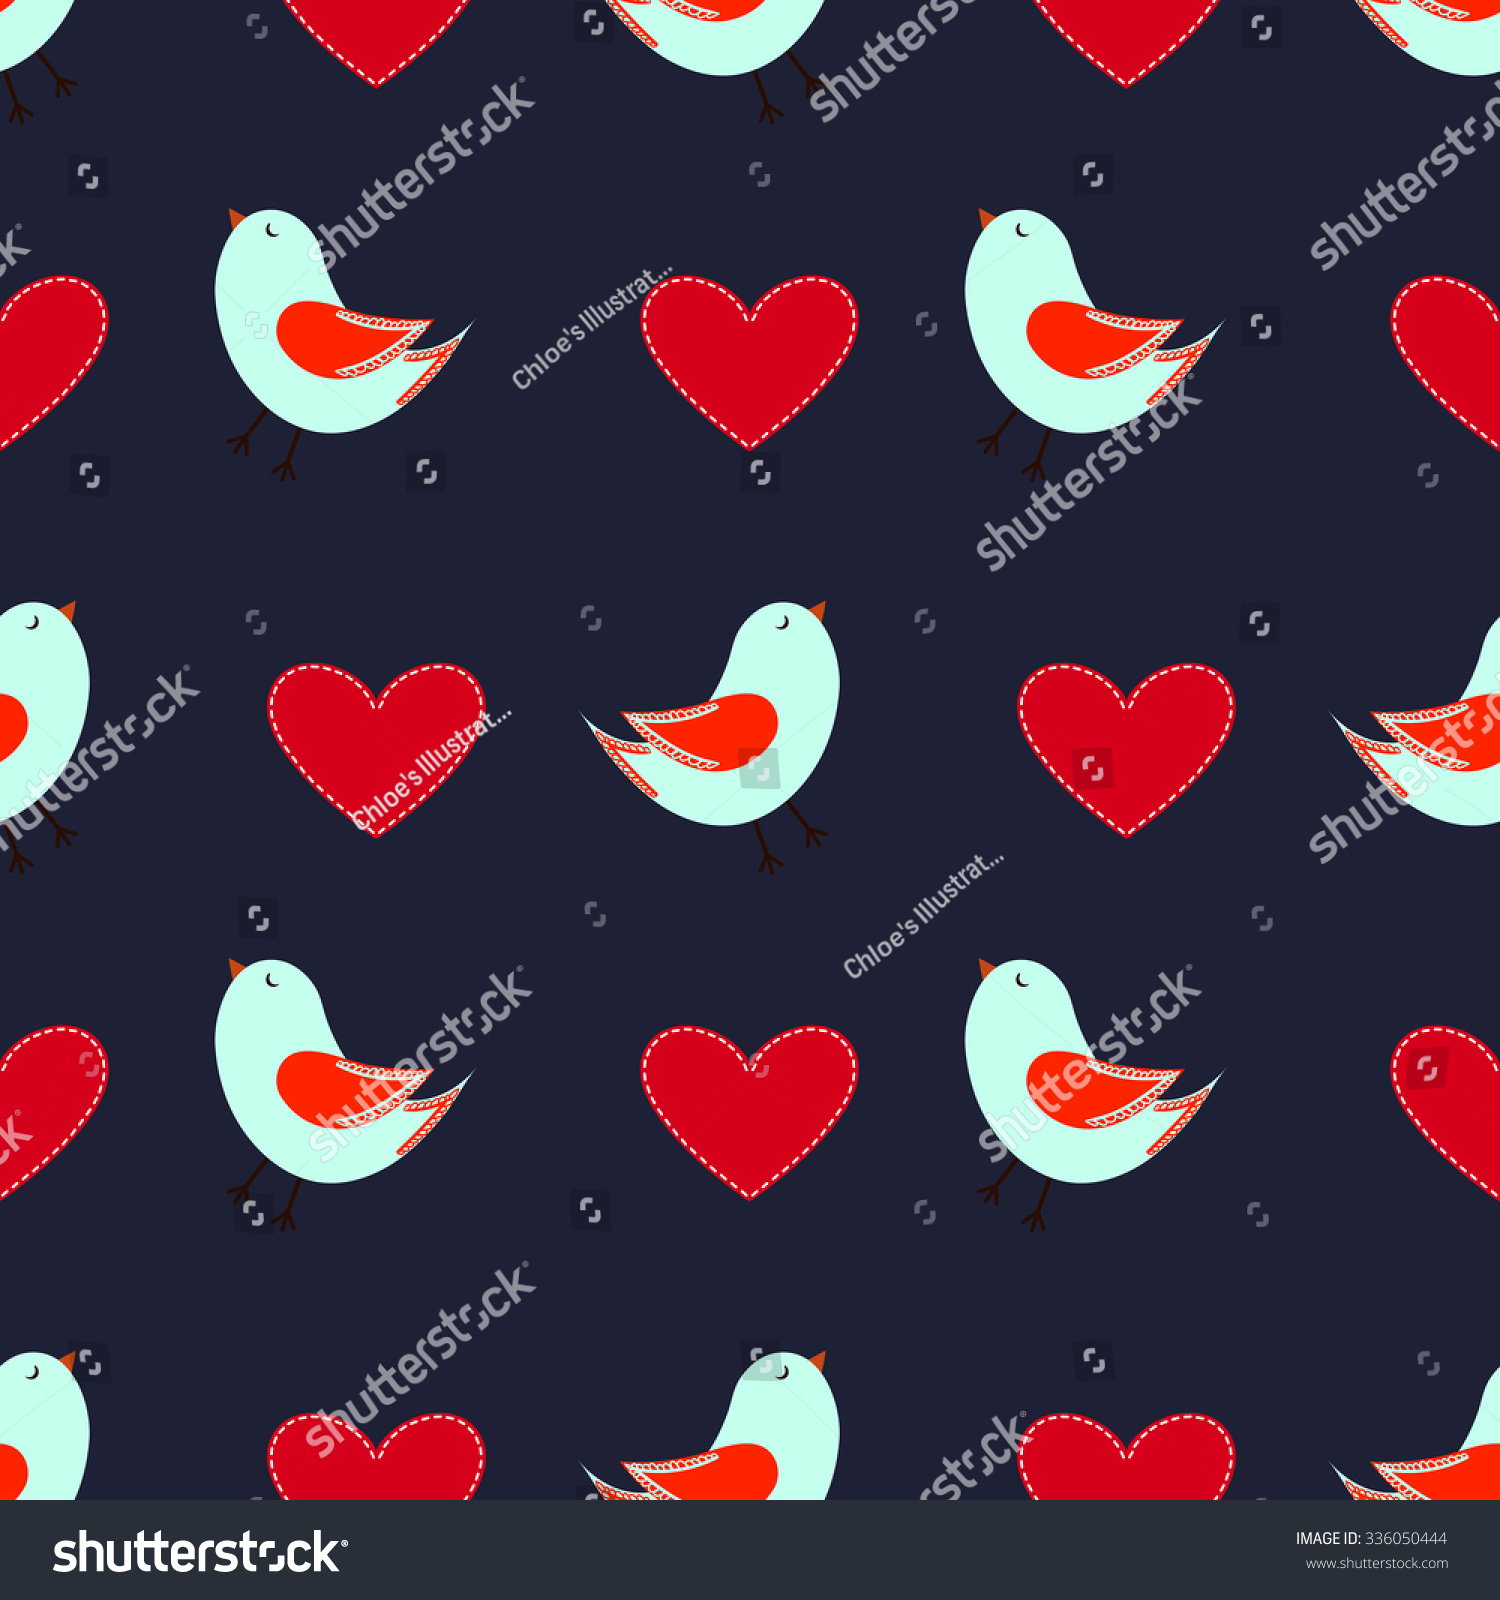 stock-vector-cute-seamless-pattern-with-